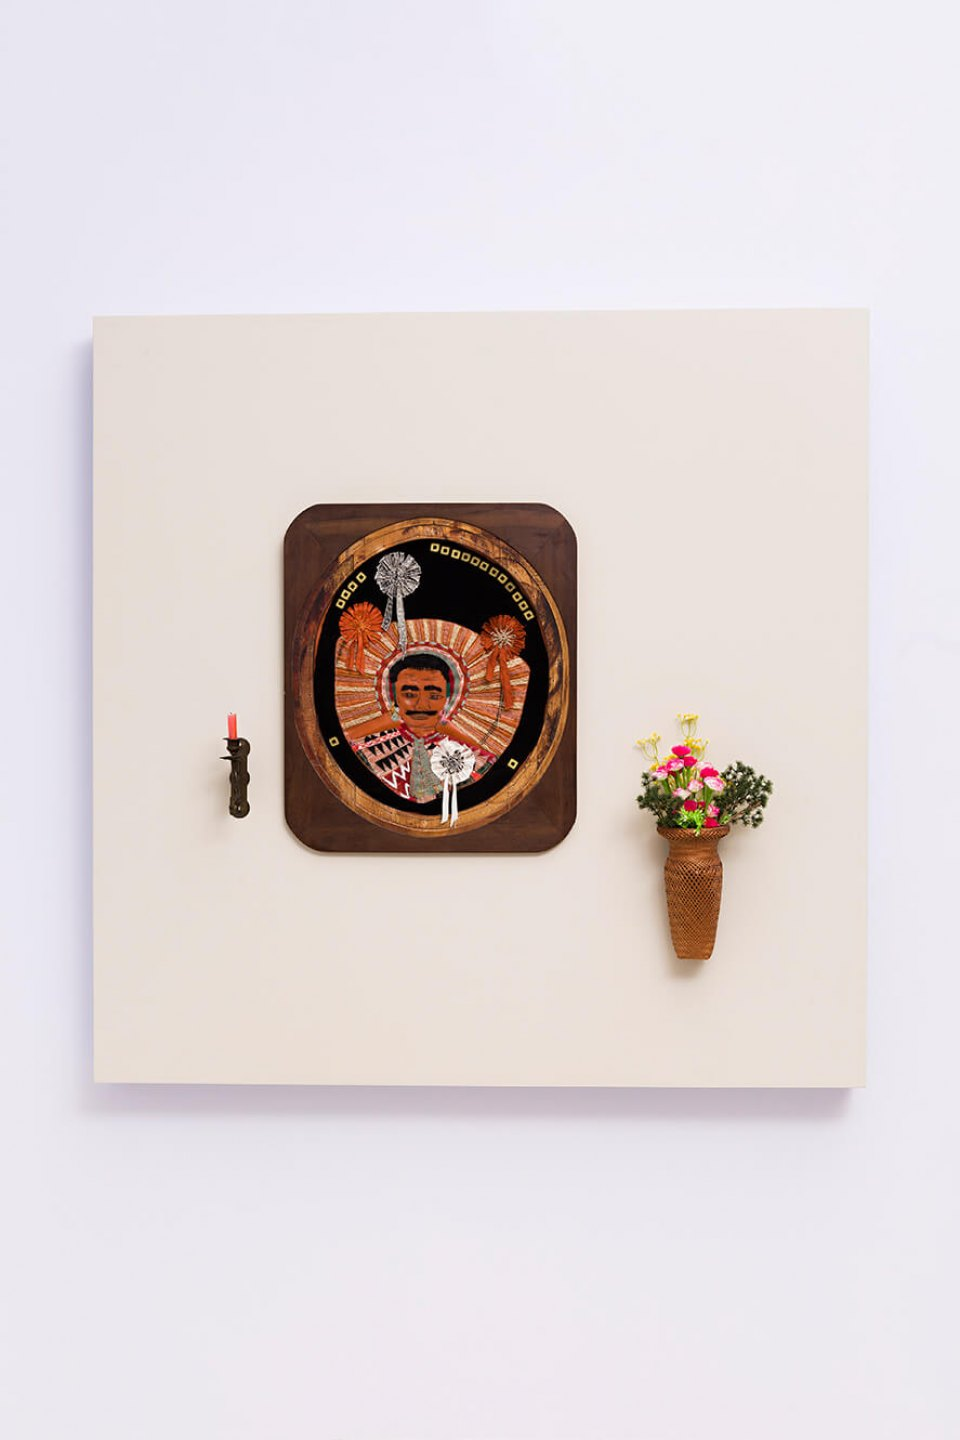 f.marquespenteado,<em>O altar da casa,</em>2012, PVC hand and machine embroidery in wood frame, wicker basket, artificial flowers hand embroidery and support for candle, 90 × 94 × 19 cm - Mendes Wood DM